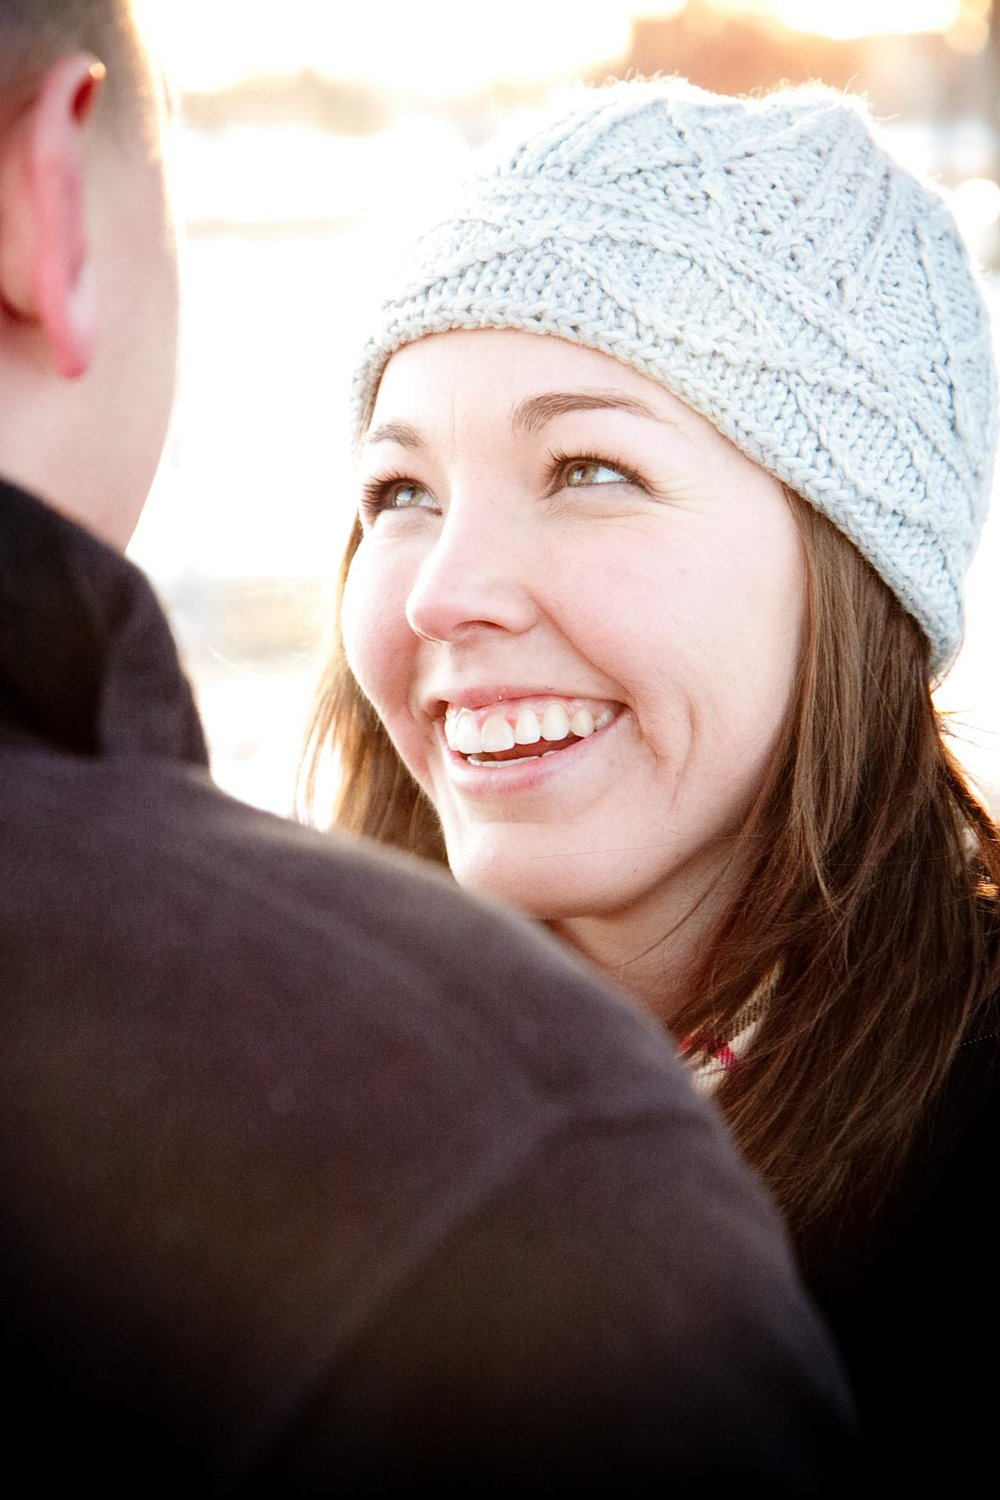 engagement-adam-shea-photography-green-bay-appleton-neenah-photographer-01.jpg